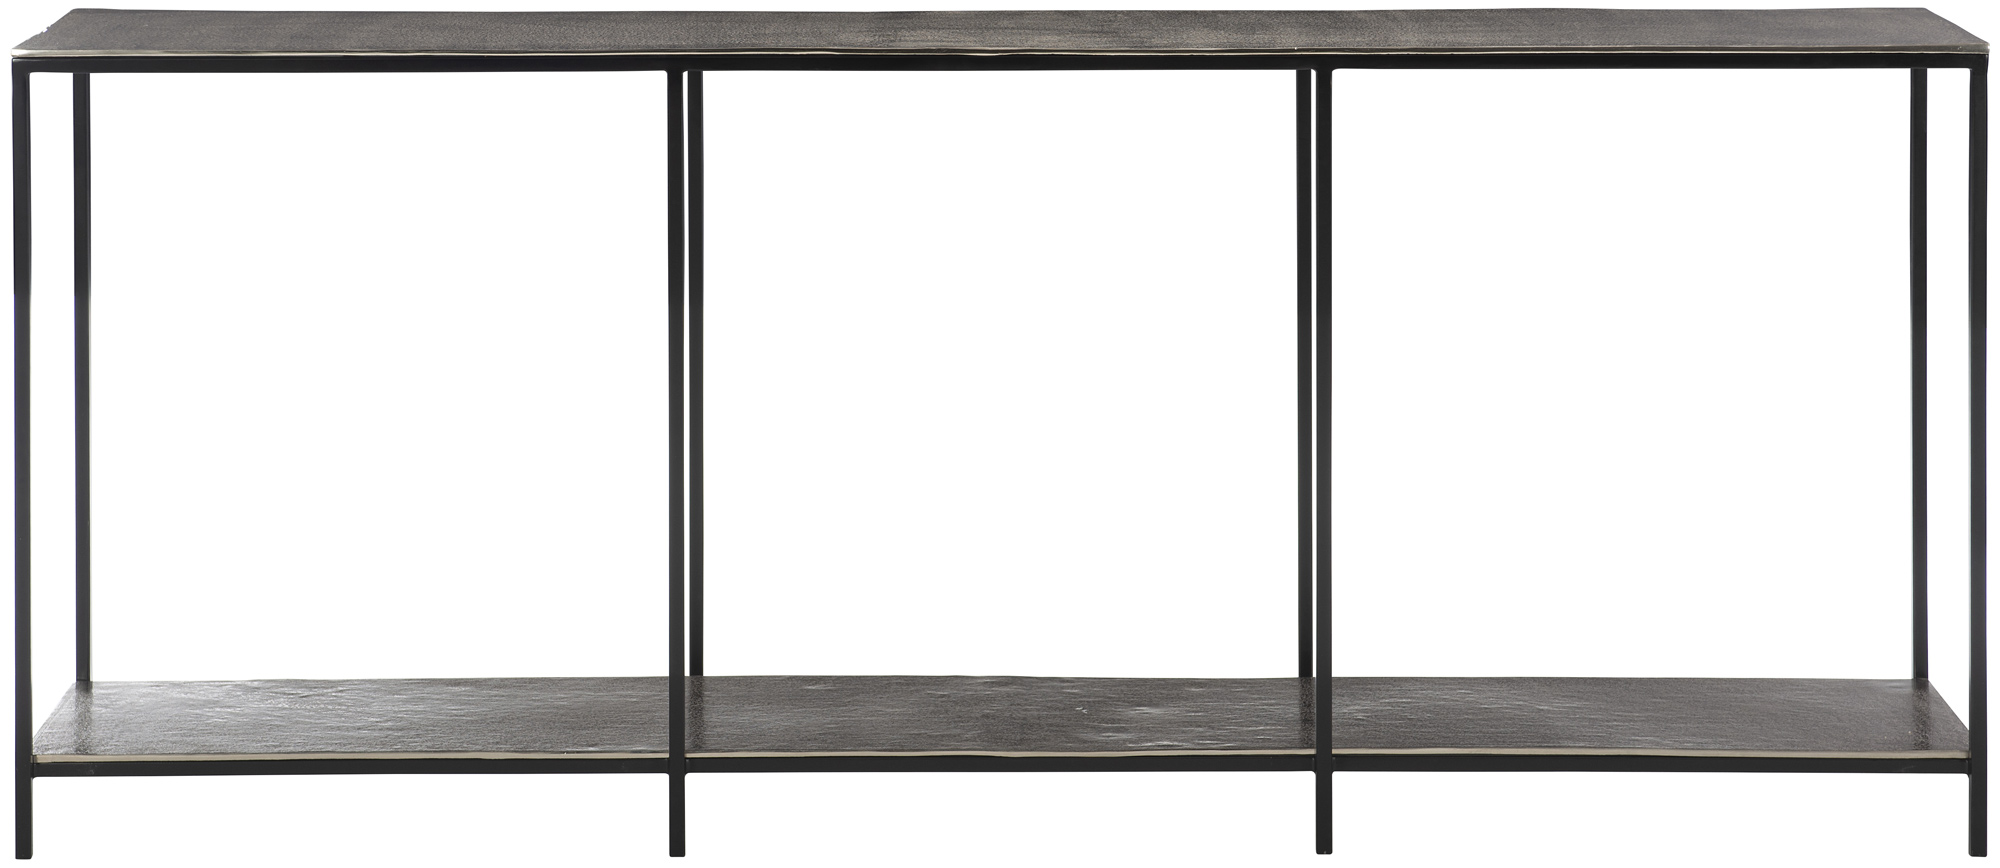 Interiors - Equinox Console Table by Bernhardt at Esprit Decor Home Furnishings